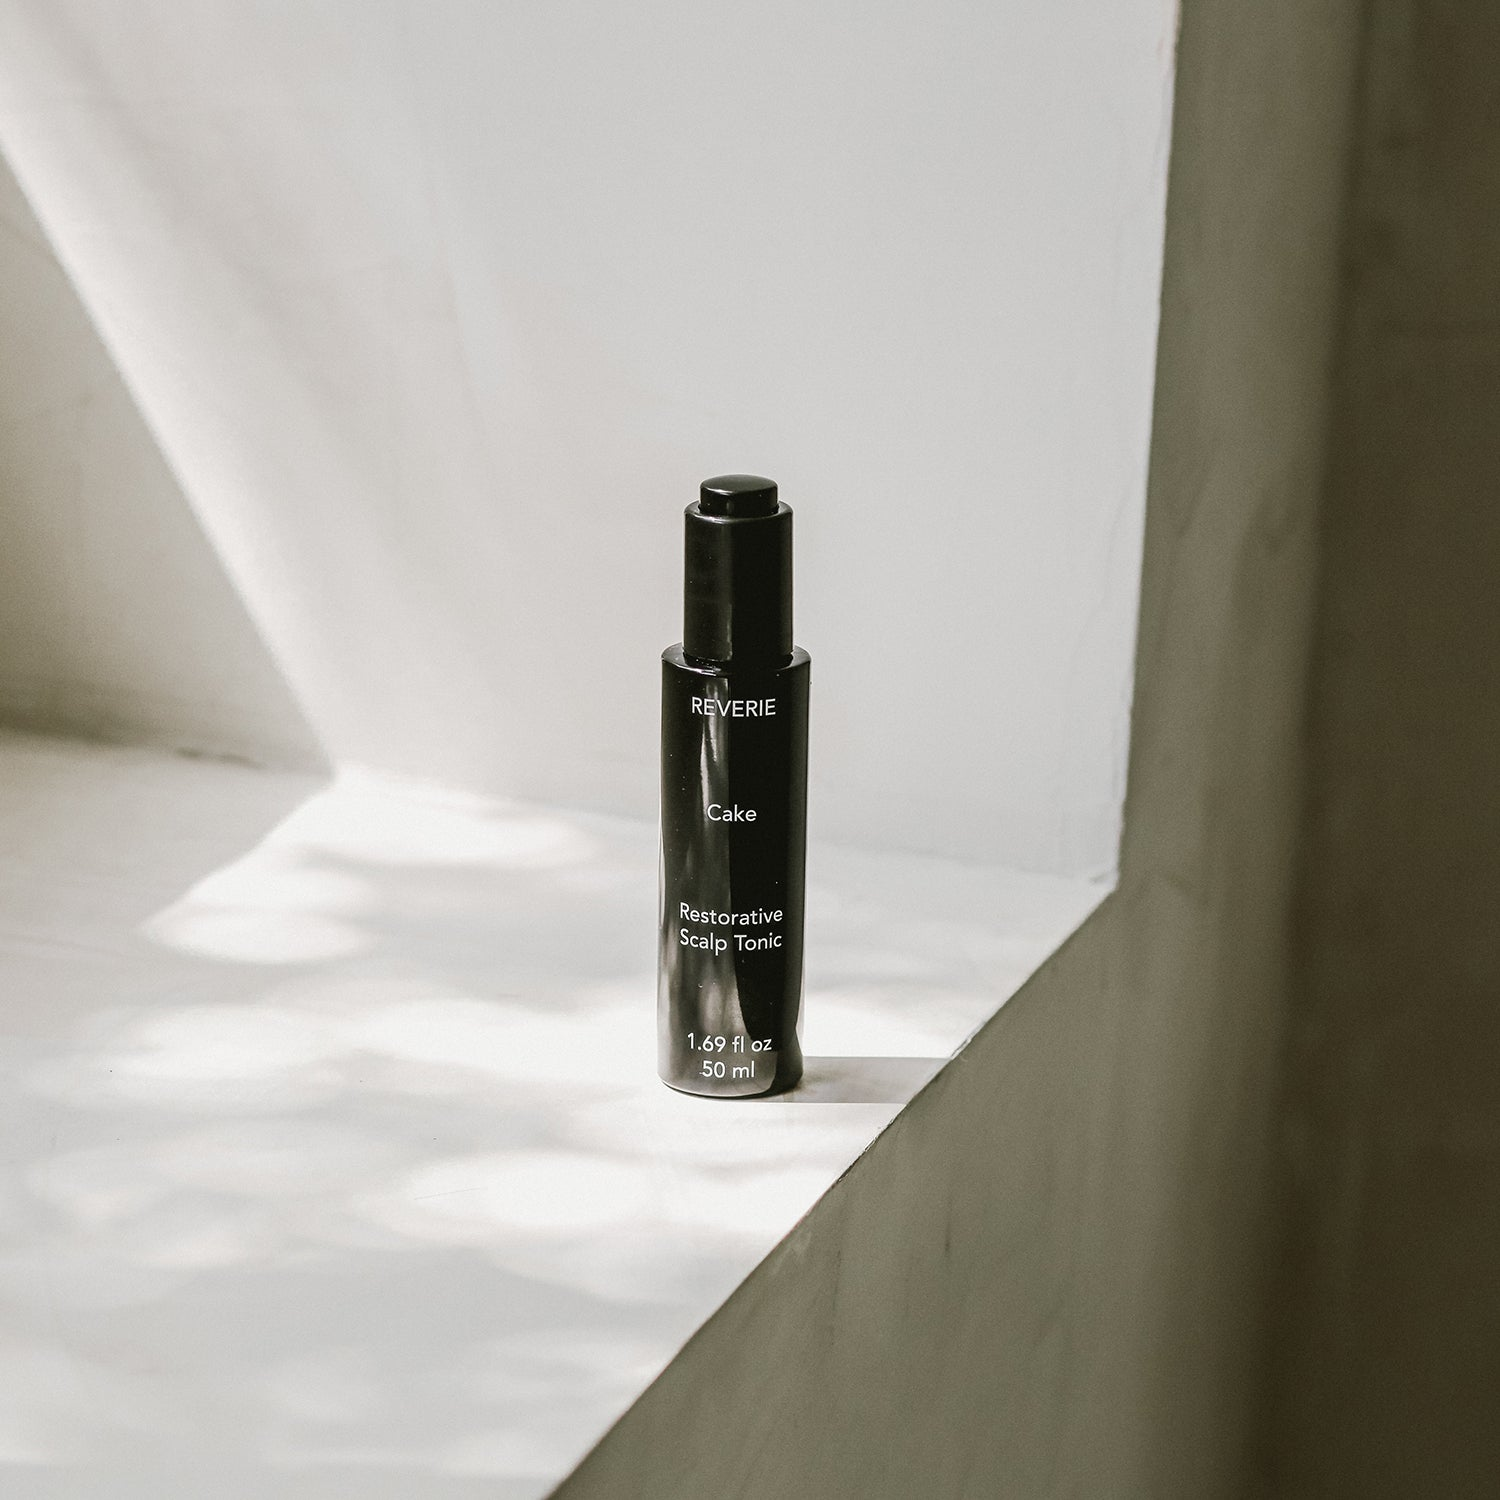 A black glass bottle with white text its on a sun lit beige windowsill. The text reads: Reverie Cake Restorative Scalp Tonic.